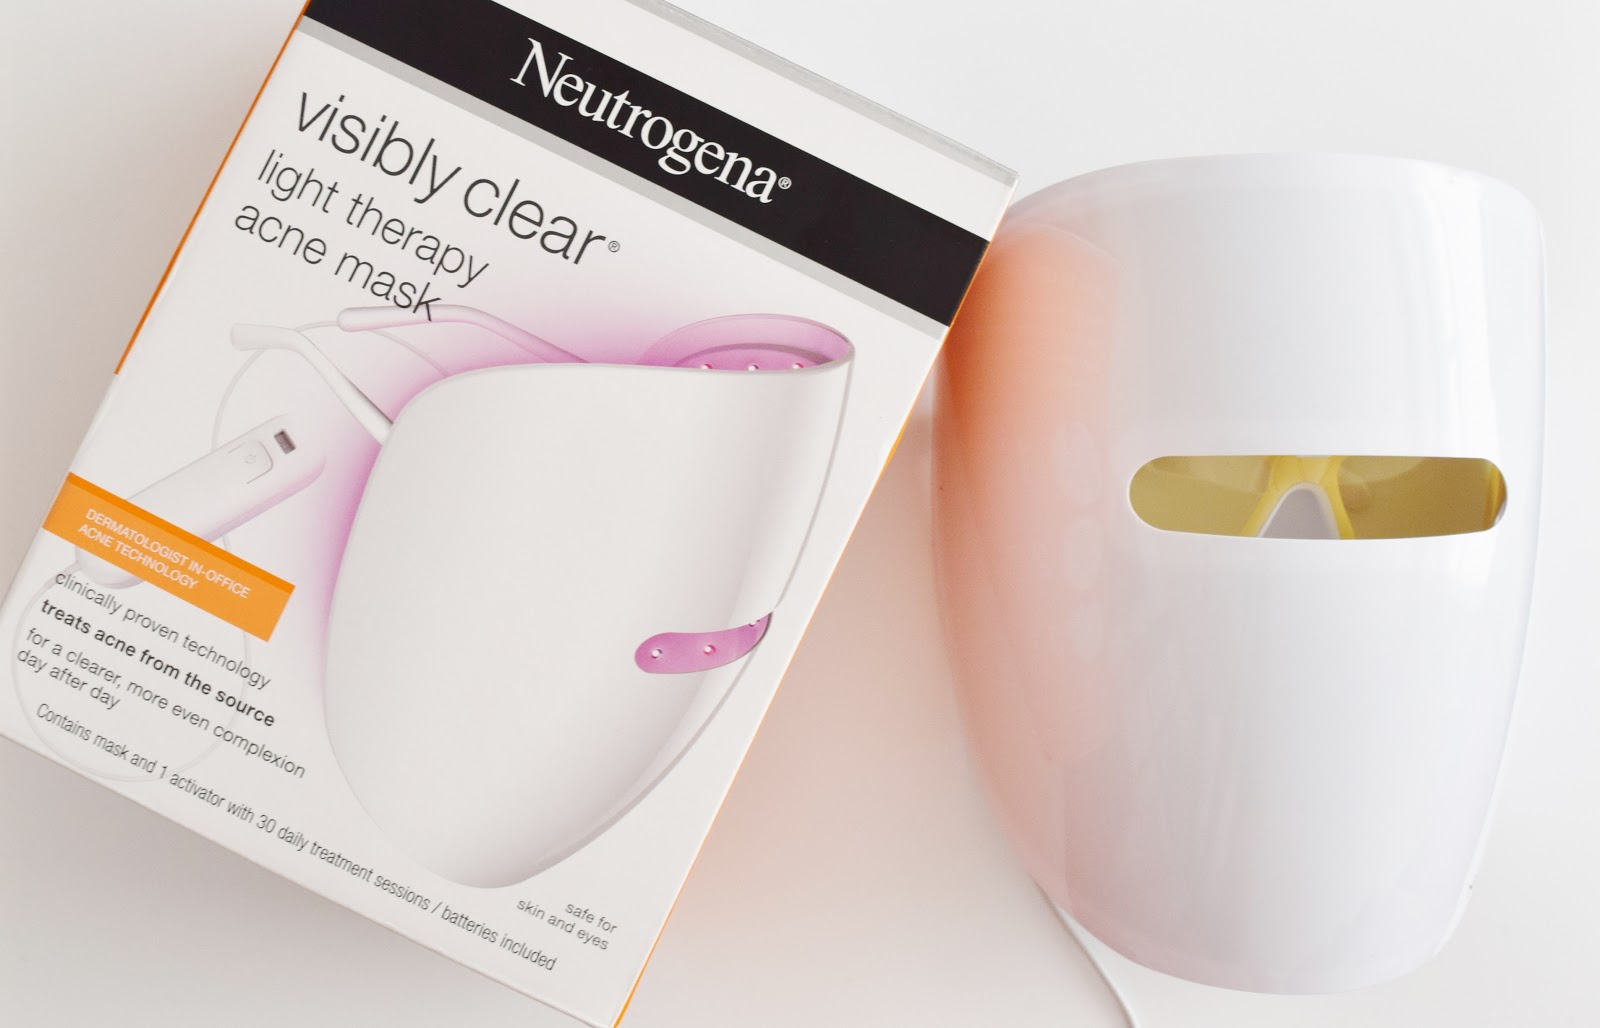 Face Mask Friday Neutrogena Visibly Clear Light Therapy Acne Mask